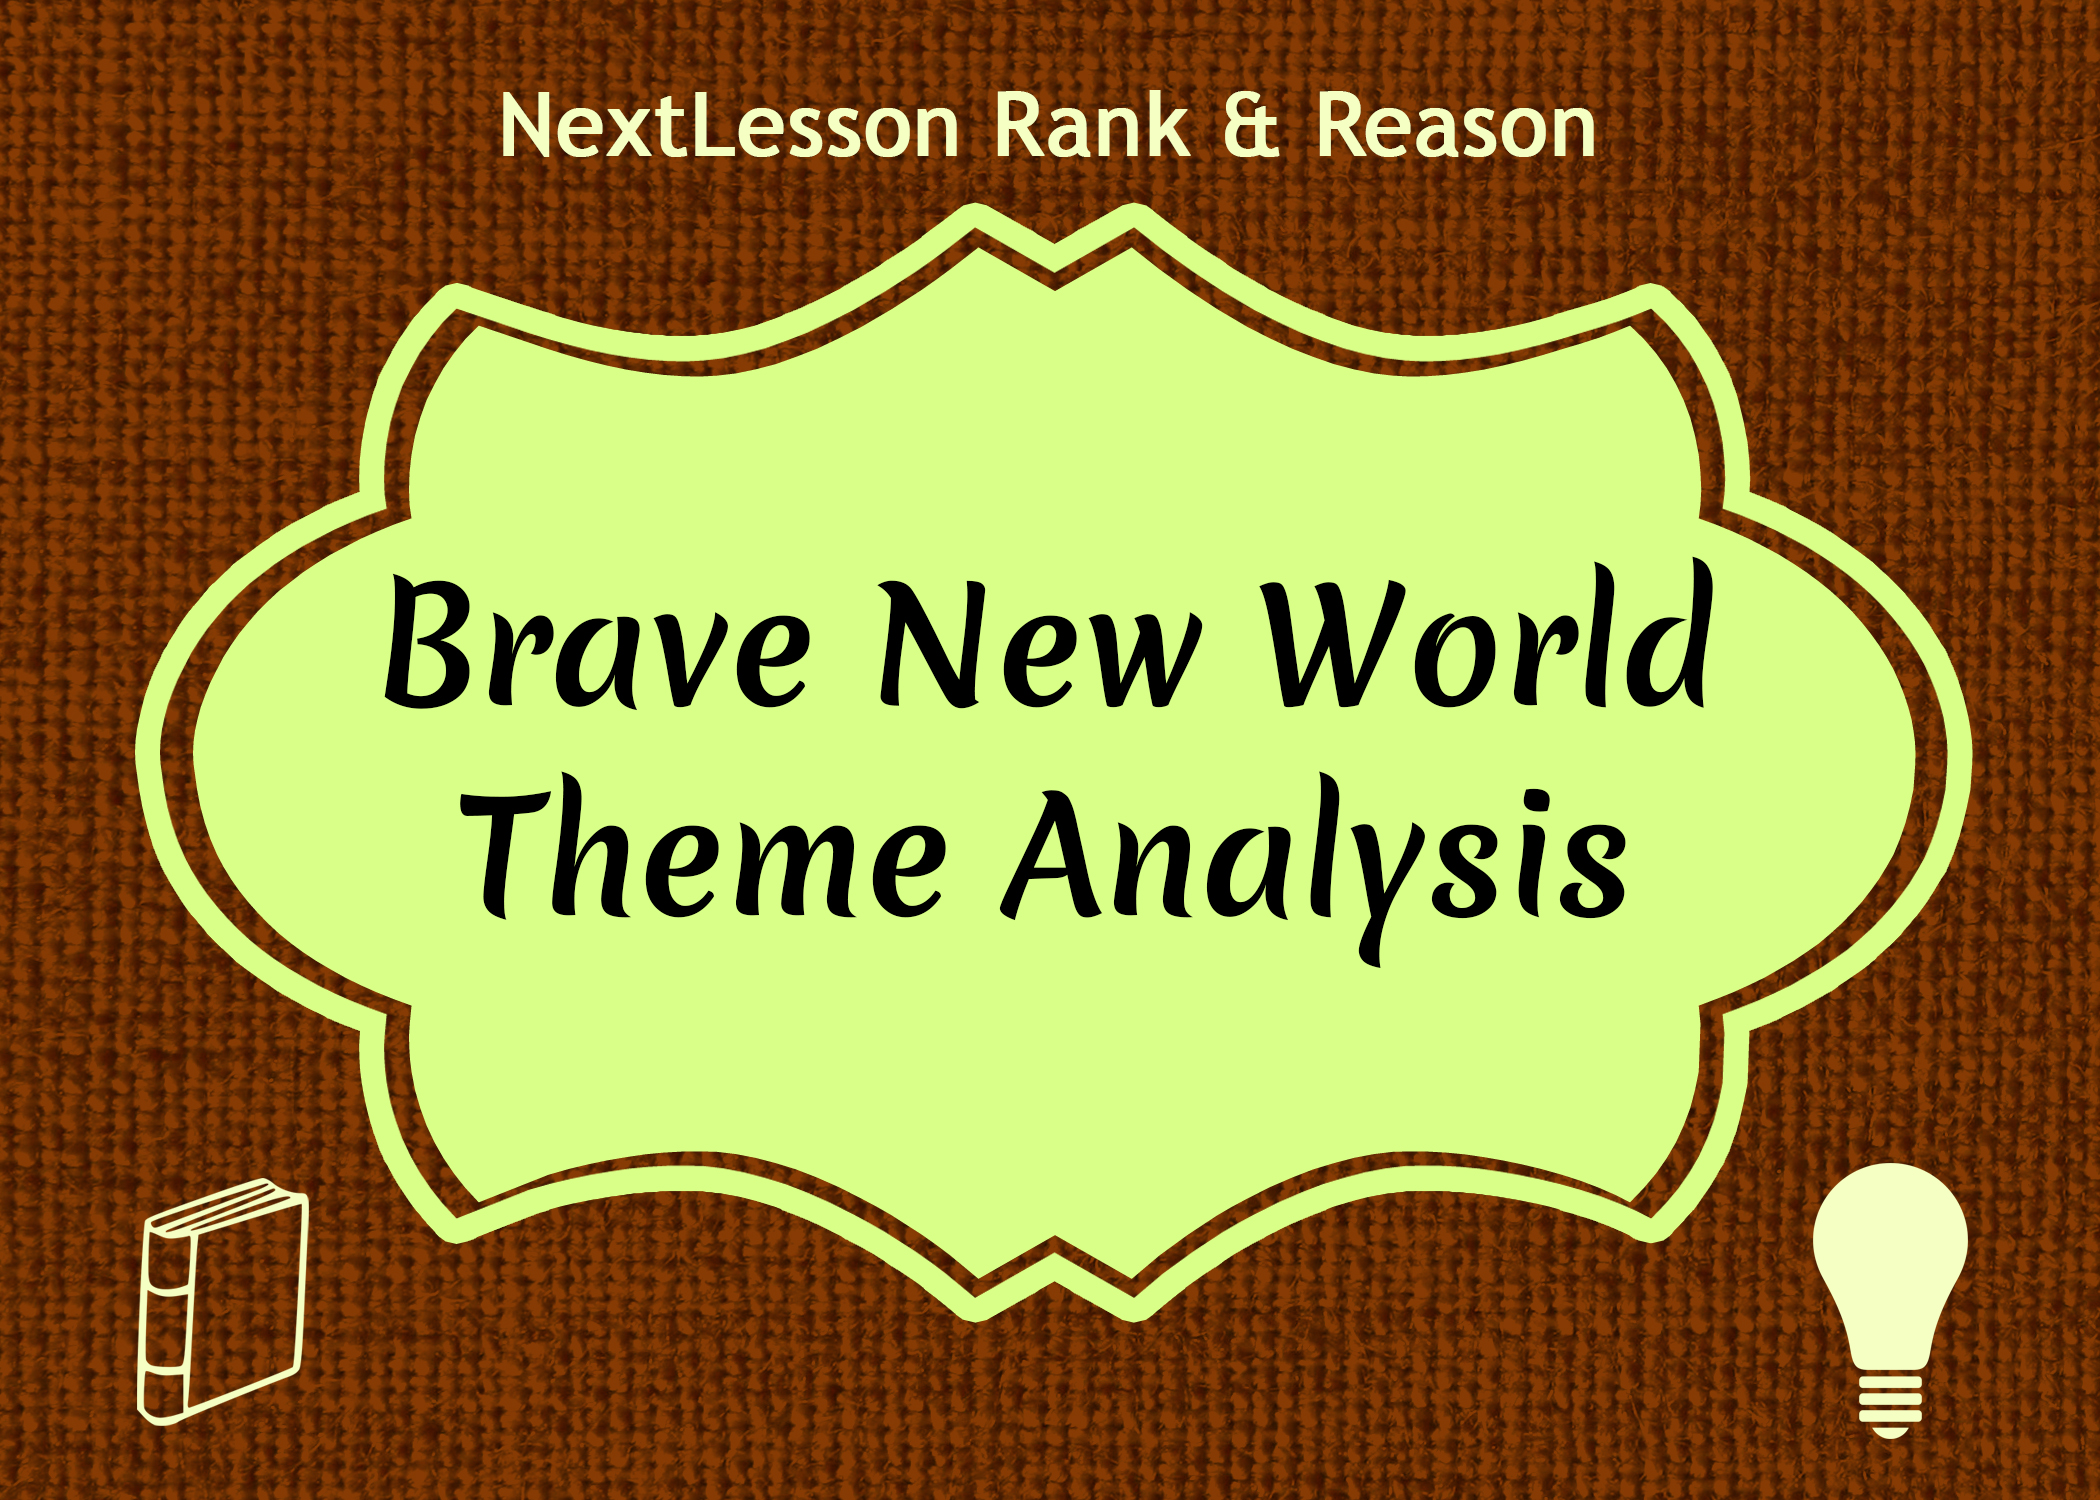 brave new world theme analysis Search results for brave new world theme analysis.